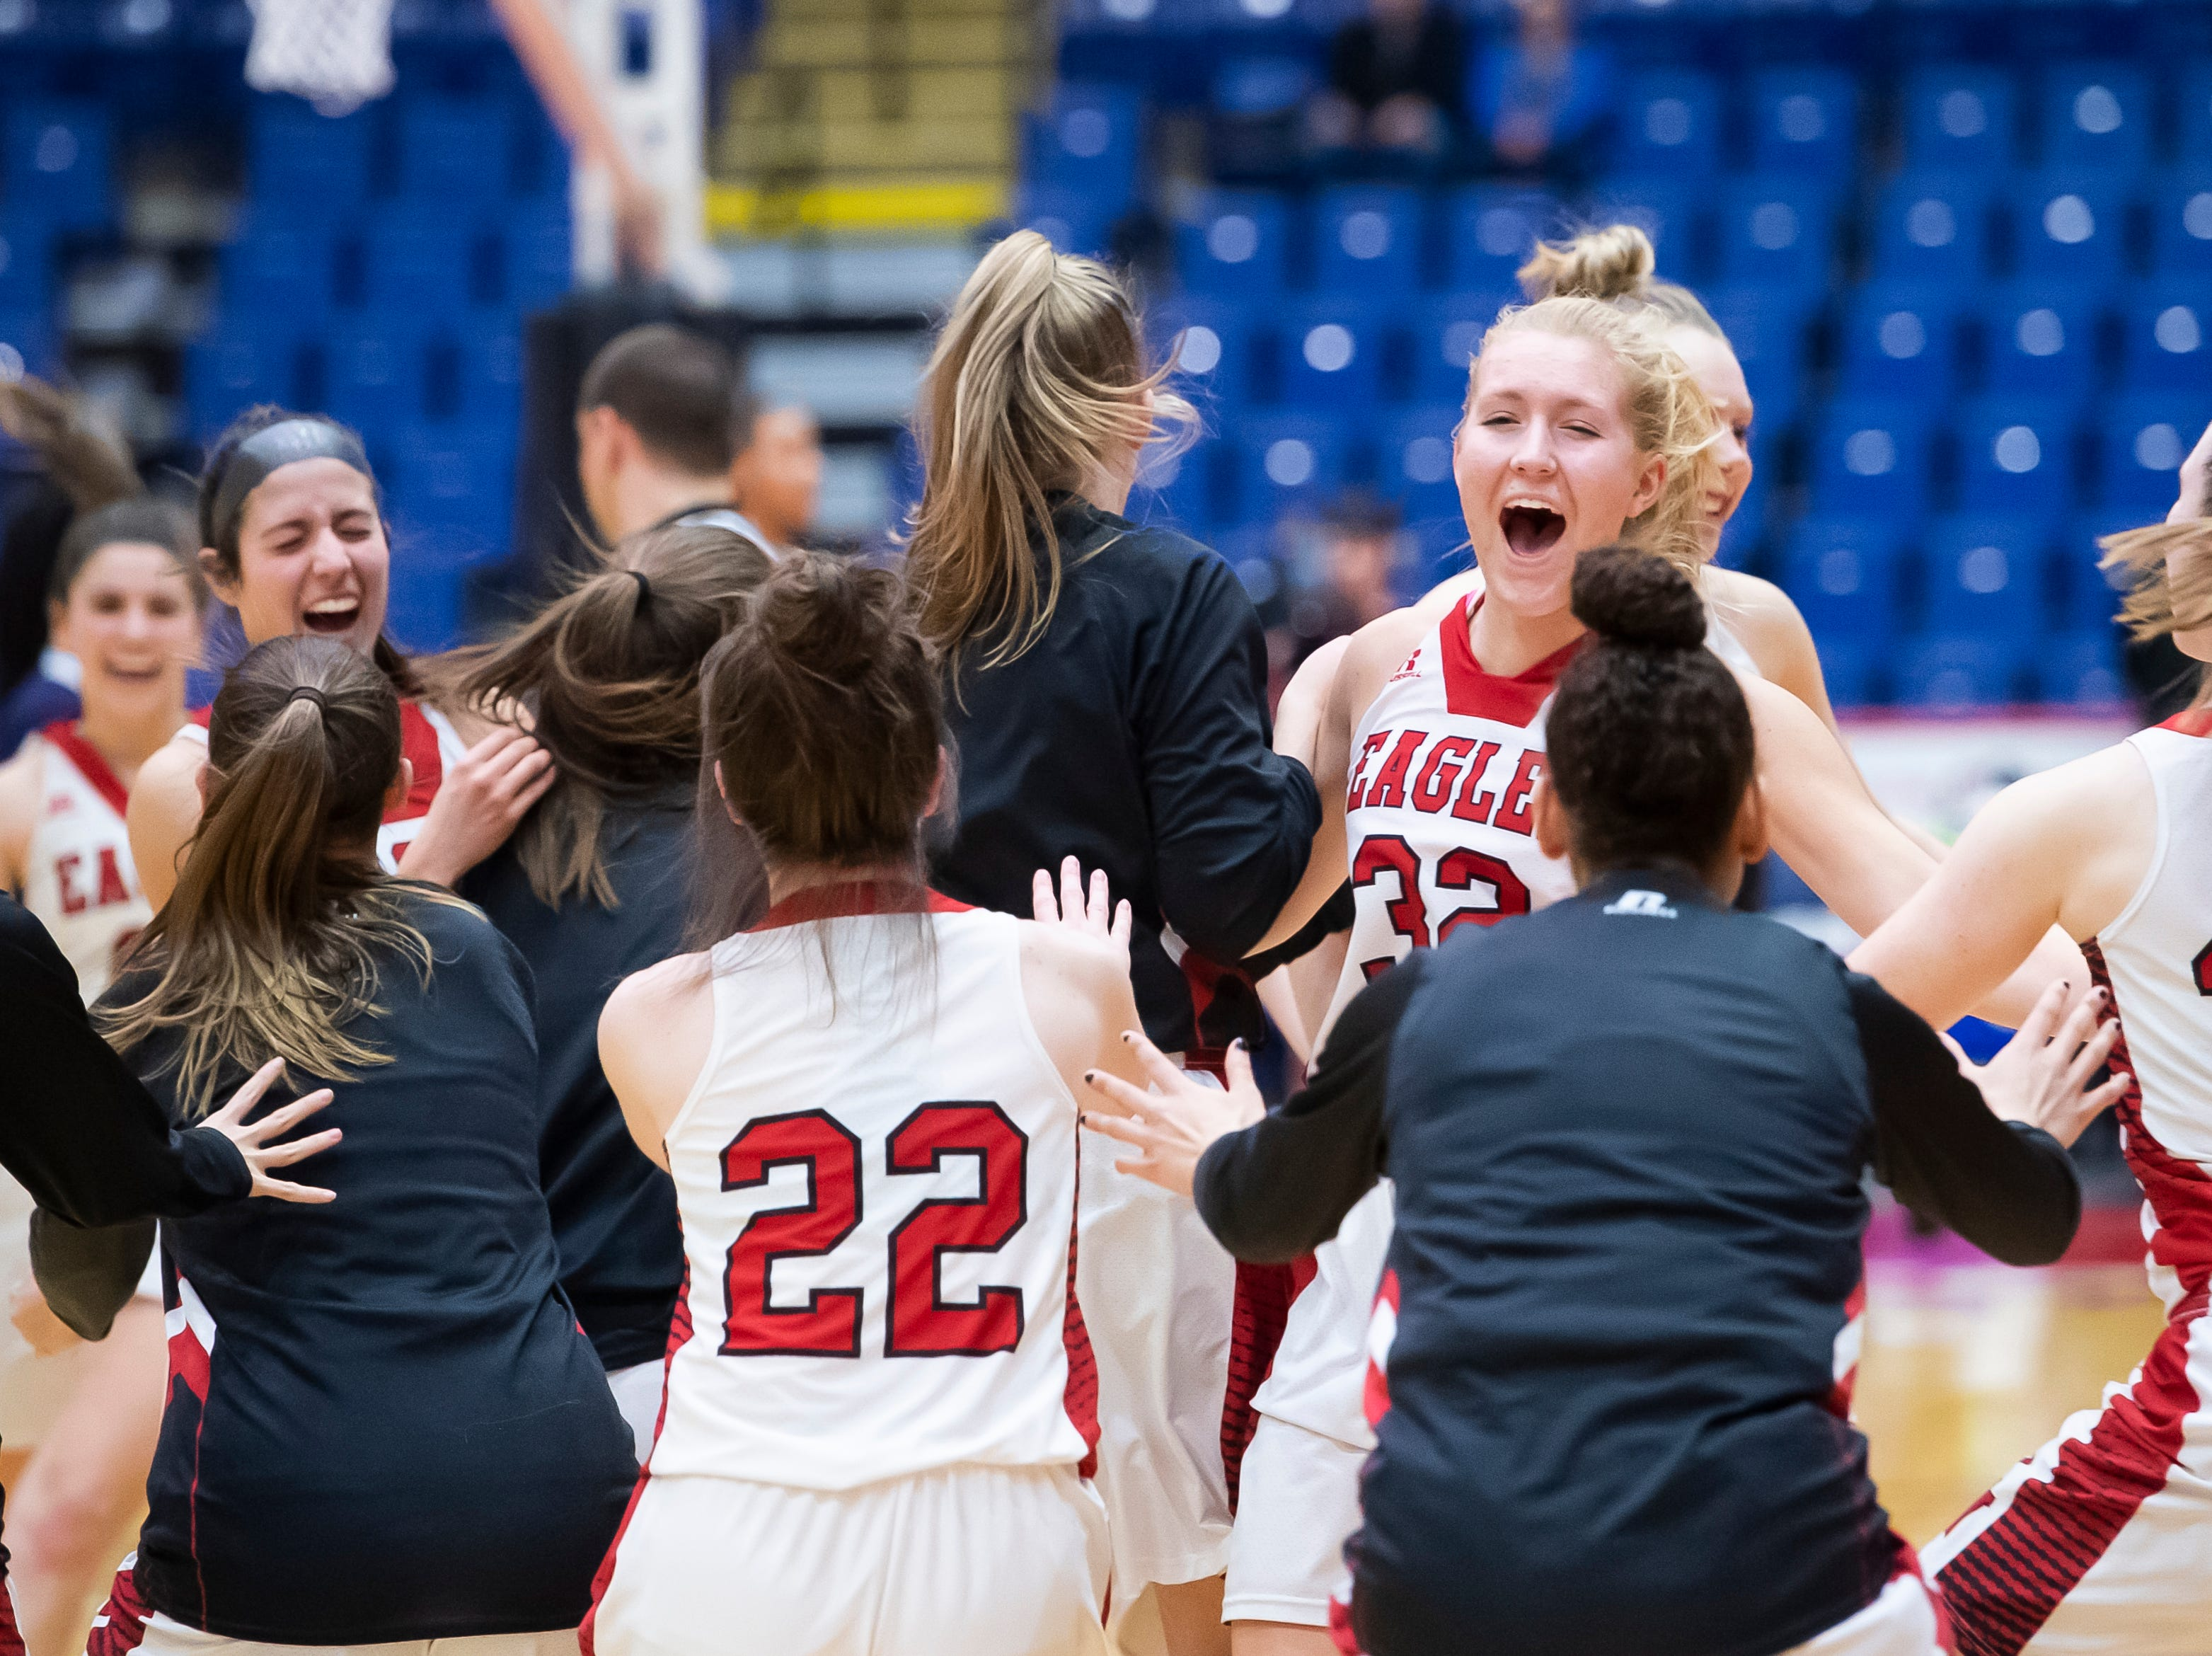 The Cumberland Valley Eagles celebrate on the court after defeating Dallastown in the District 3 6A girls championship game at Santander Arena in Reading, Pa., Friday, March 1, 2019. The Eagles won 33-27.